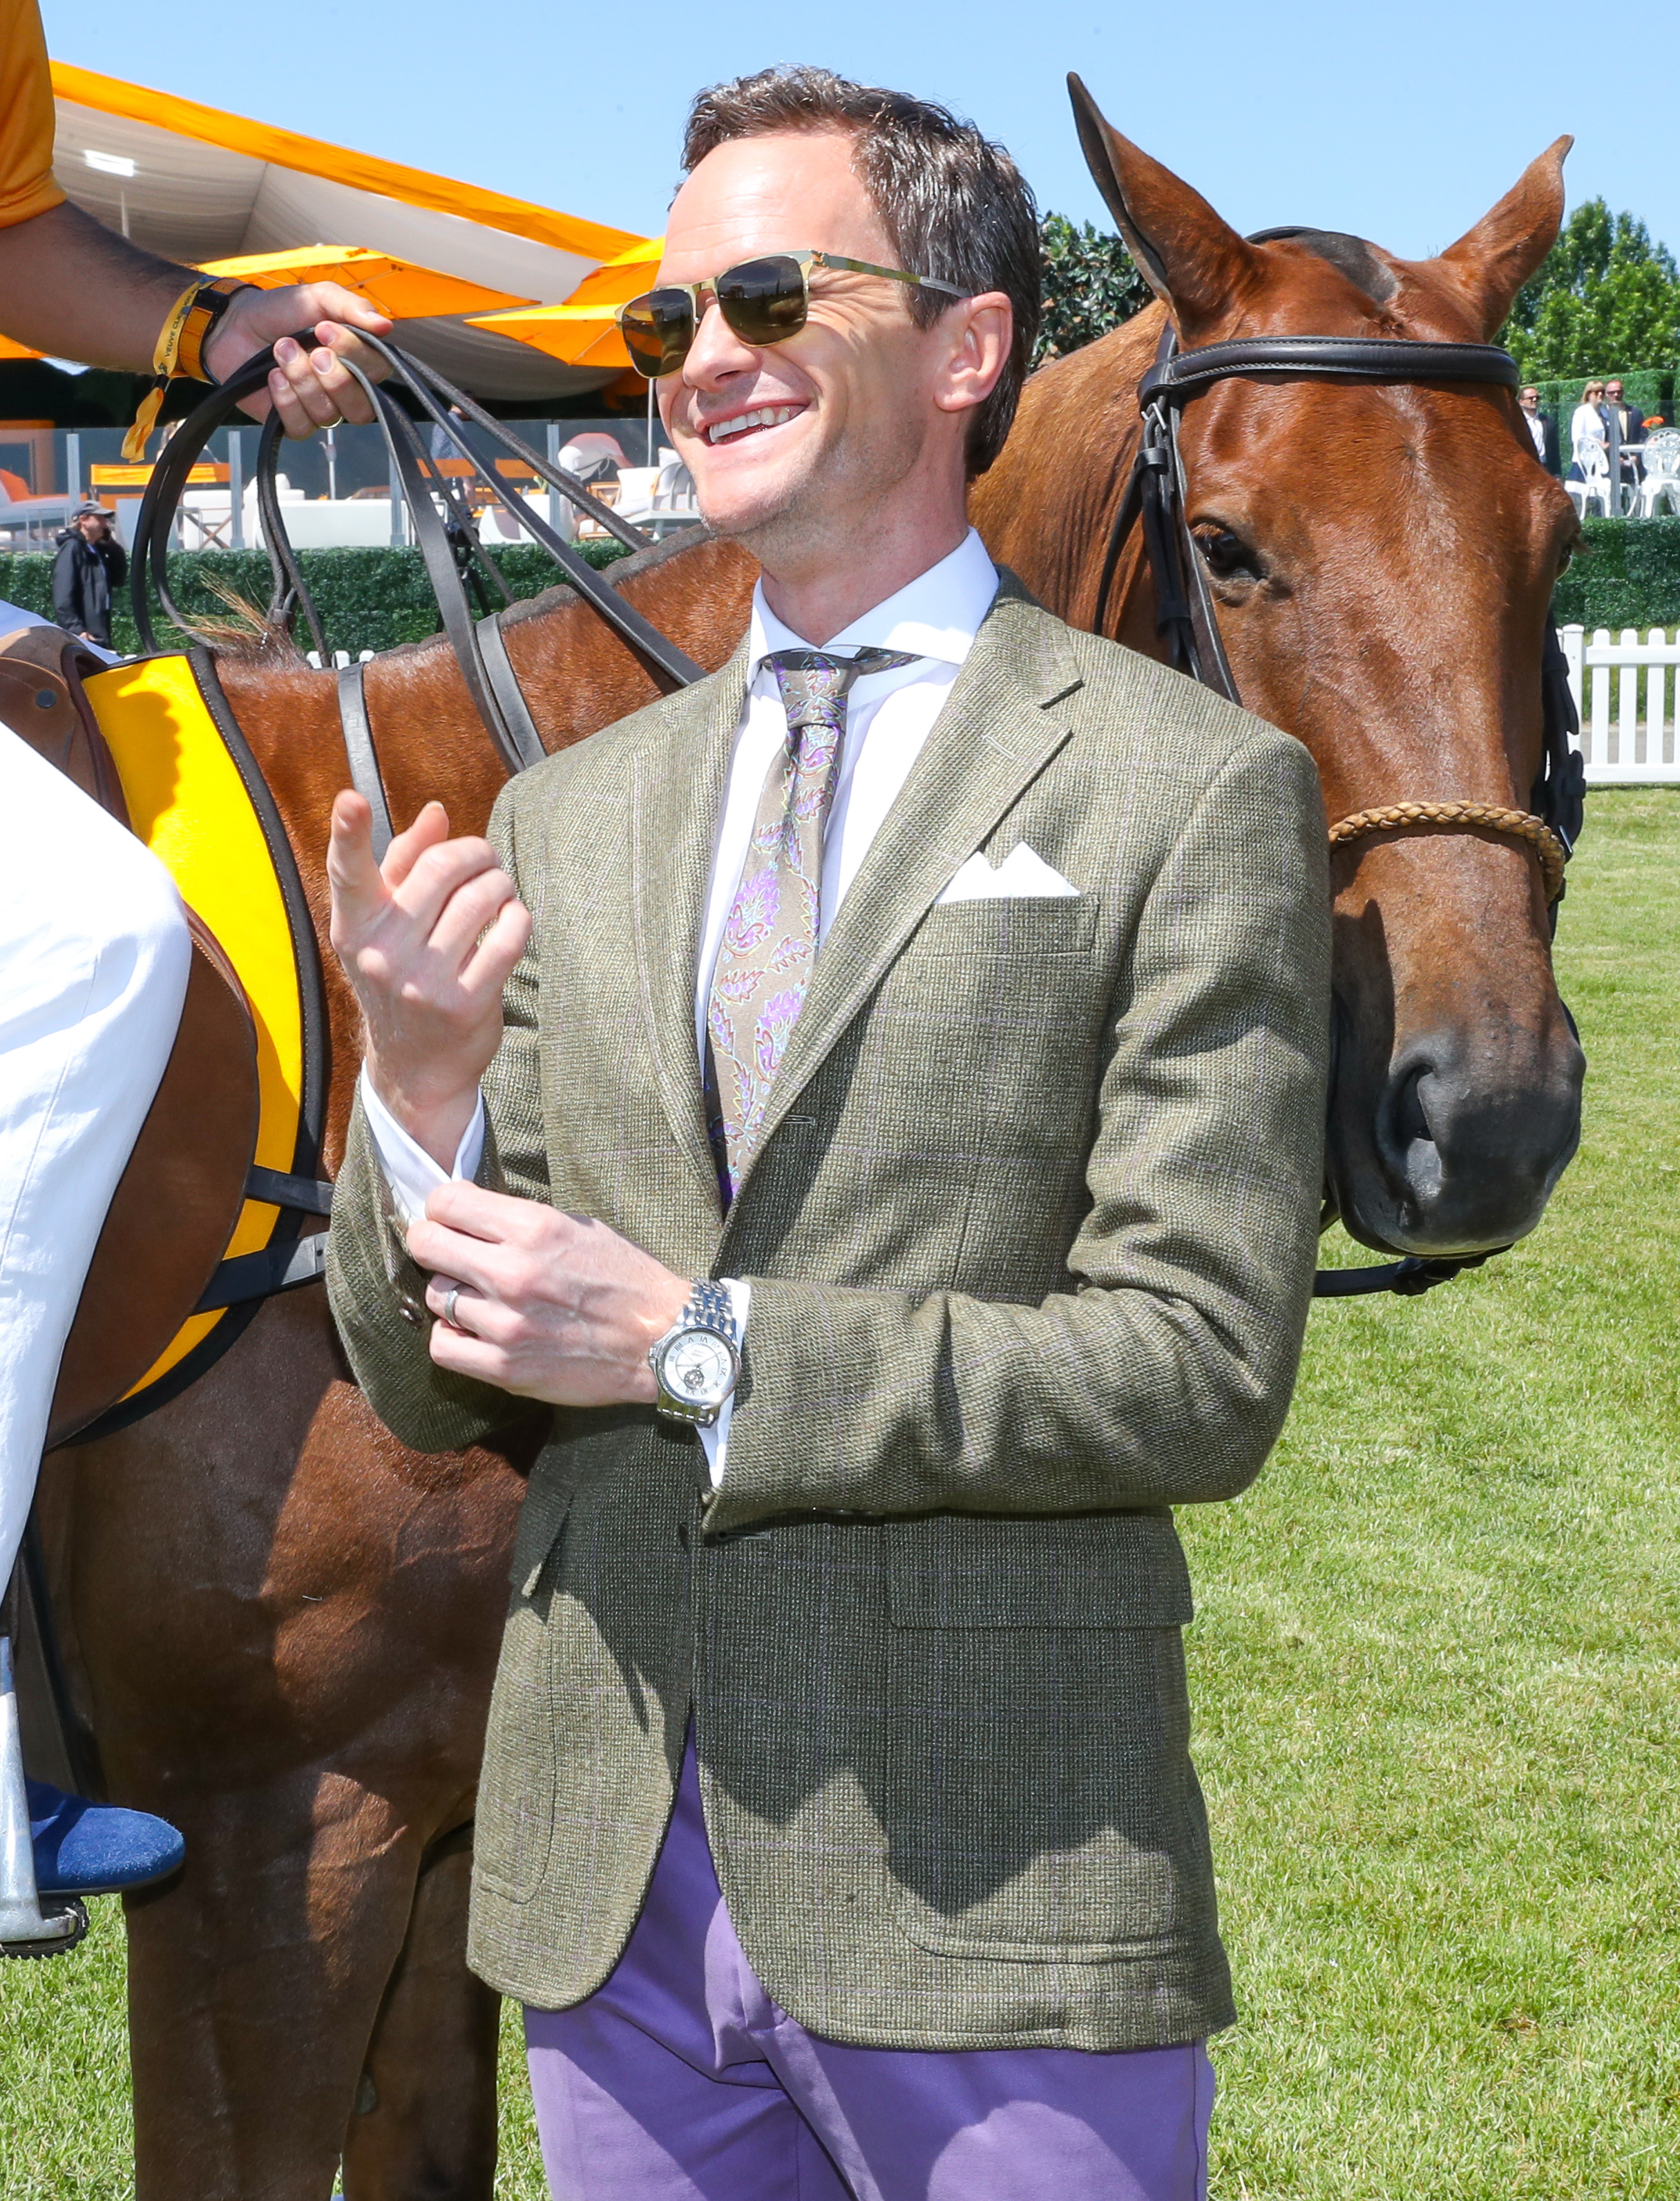 Neil Patrick Harris attends the 10th anniversary of the Veuve Clicquot Polo Classic at Liberty State Park in Jersey City, New Jersey, on June 3, 2017.